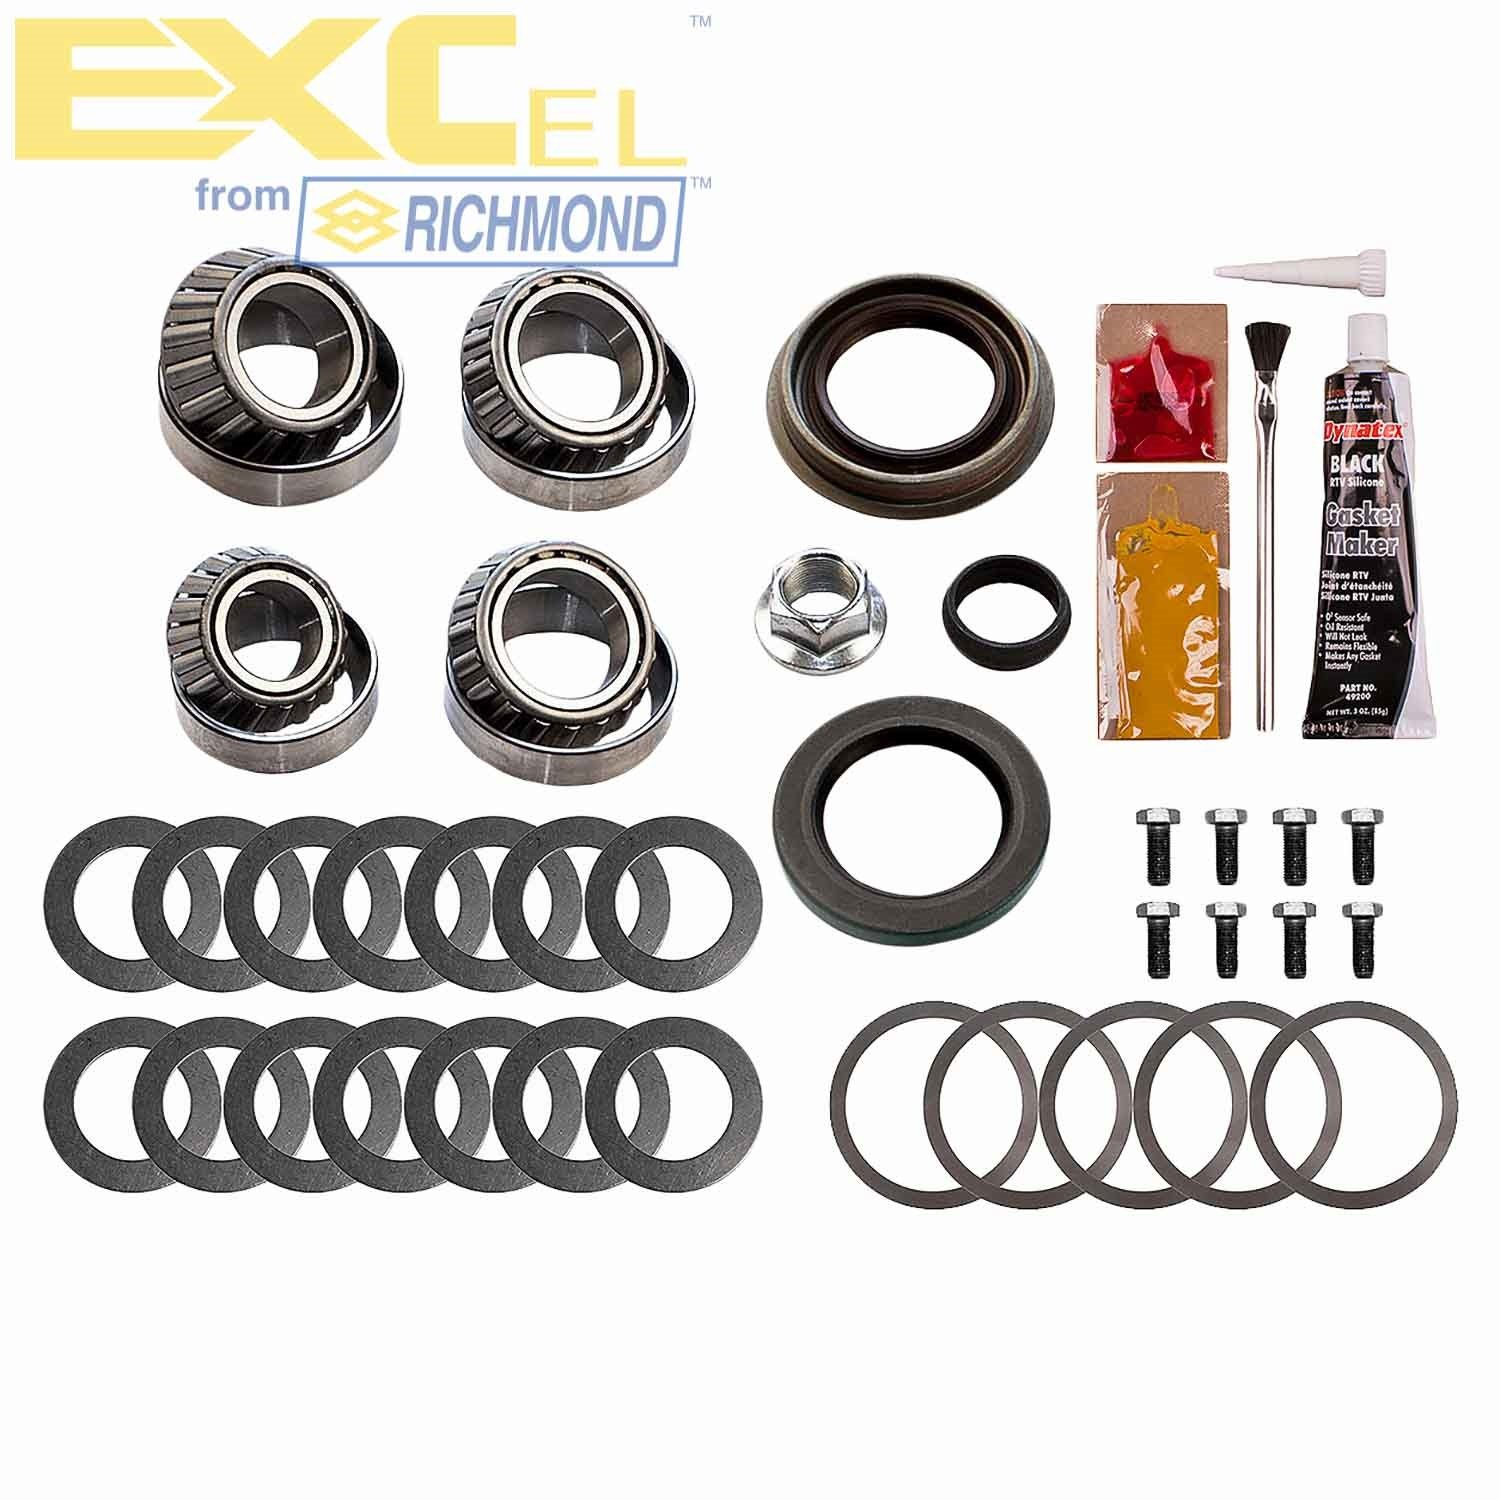 ExCel XL-1060-1 Bearing Master Kit (DANA 35 1980-2006), 1 Pack by ExCel